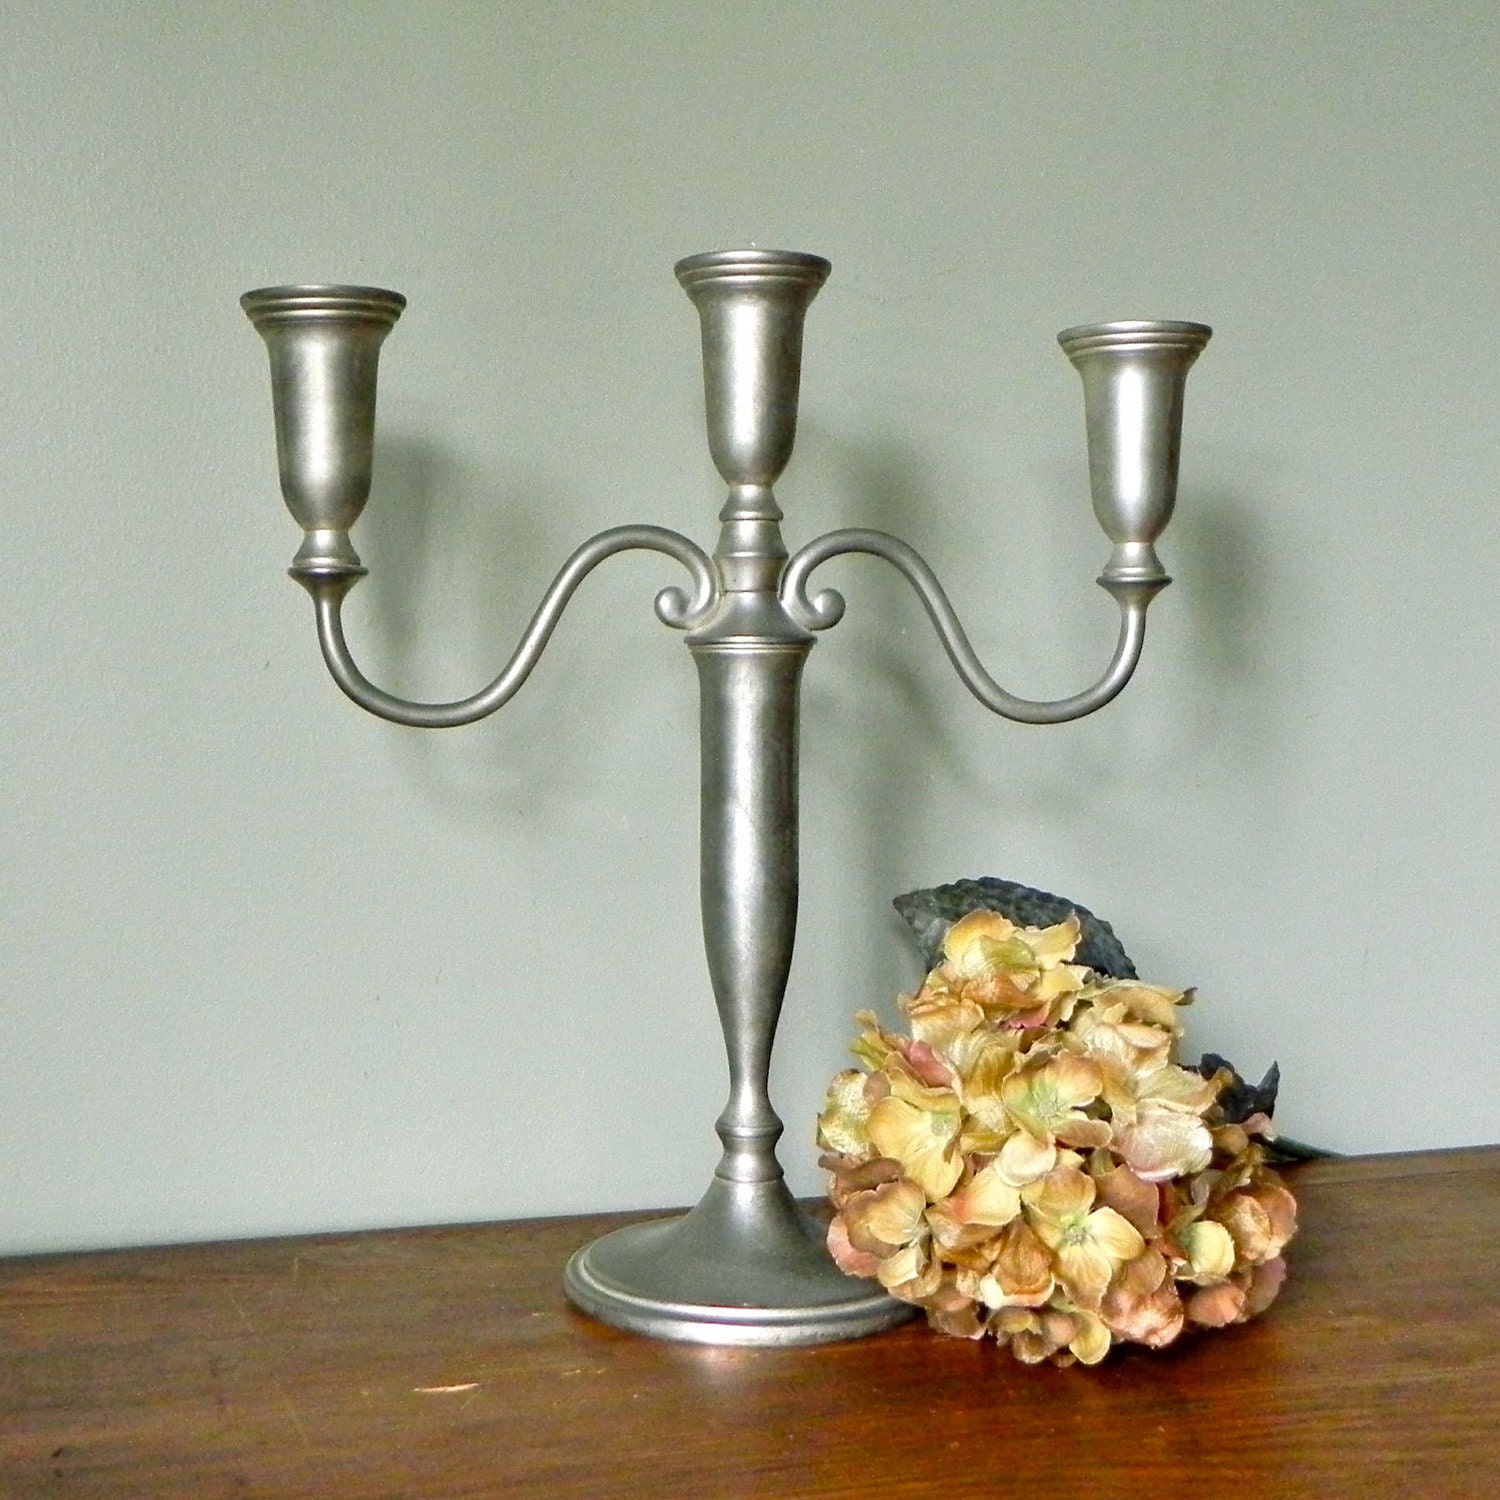 SALE Candle holder candelabra brushed nickel color heavy on Decorative Wall Sconces Candle Holders Chrome Nickel id=89950